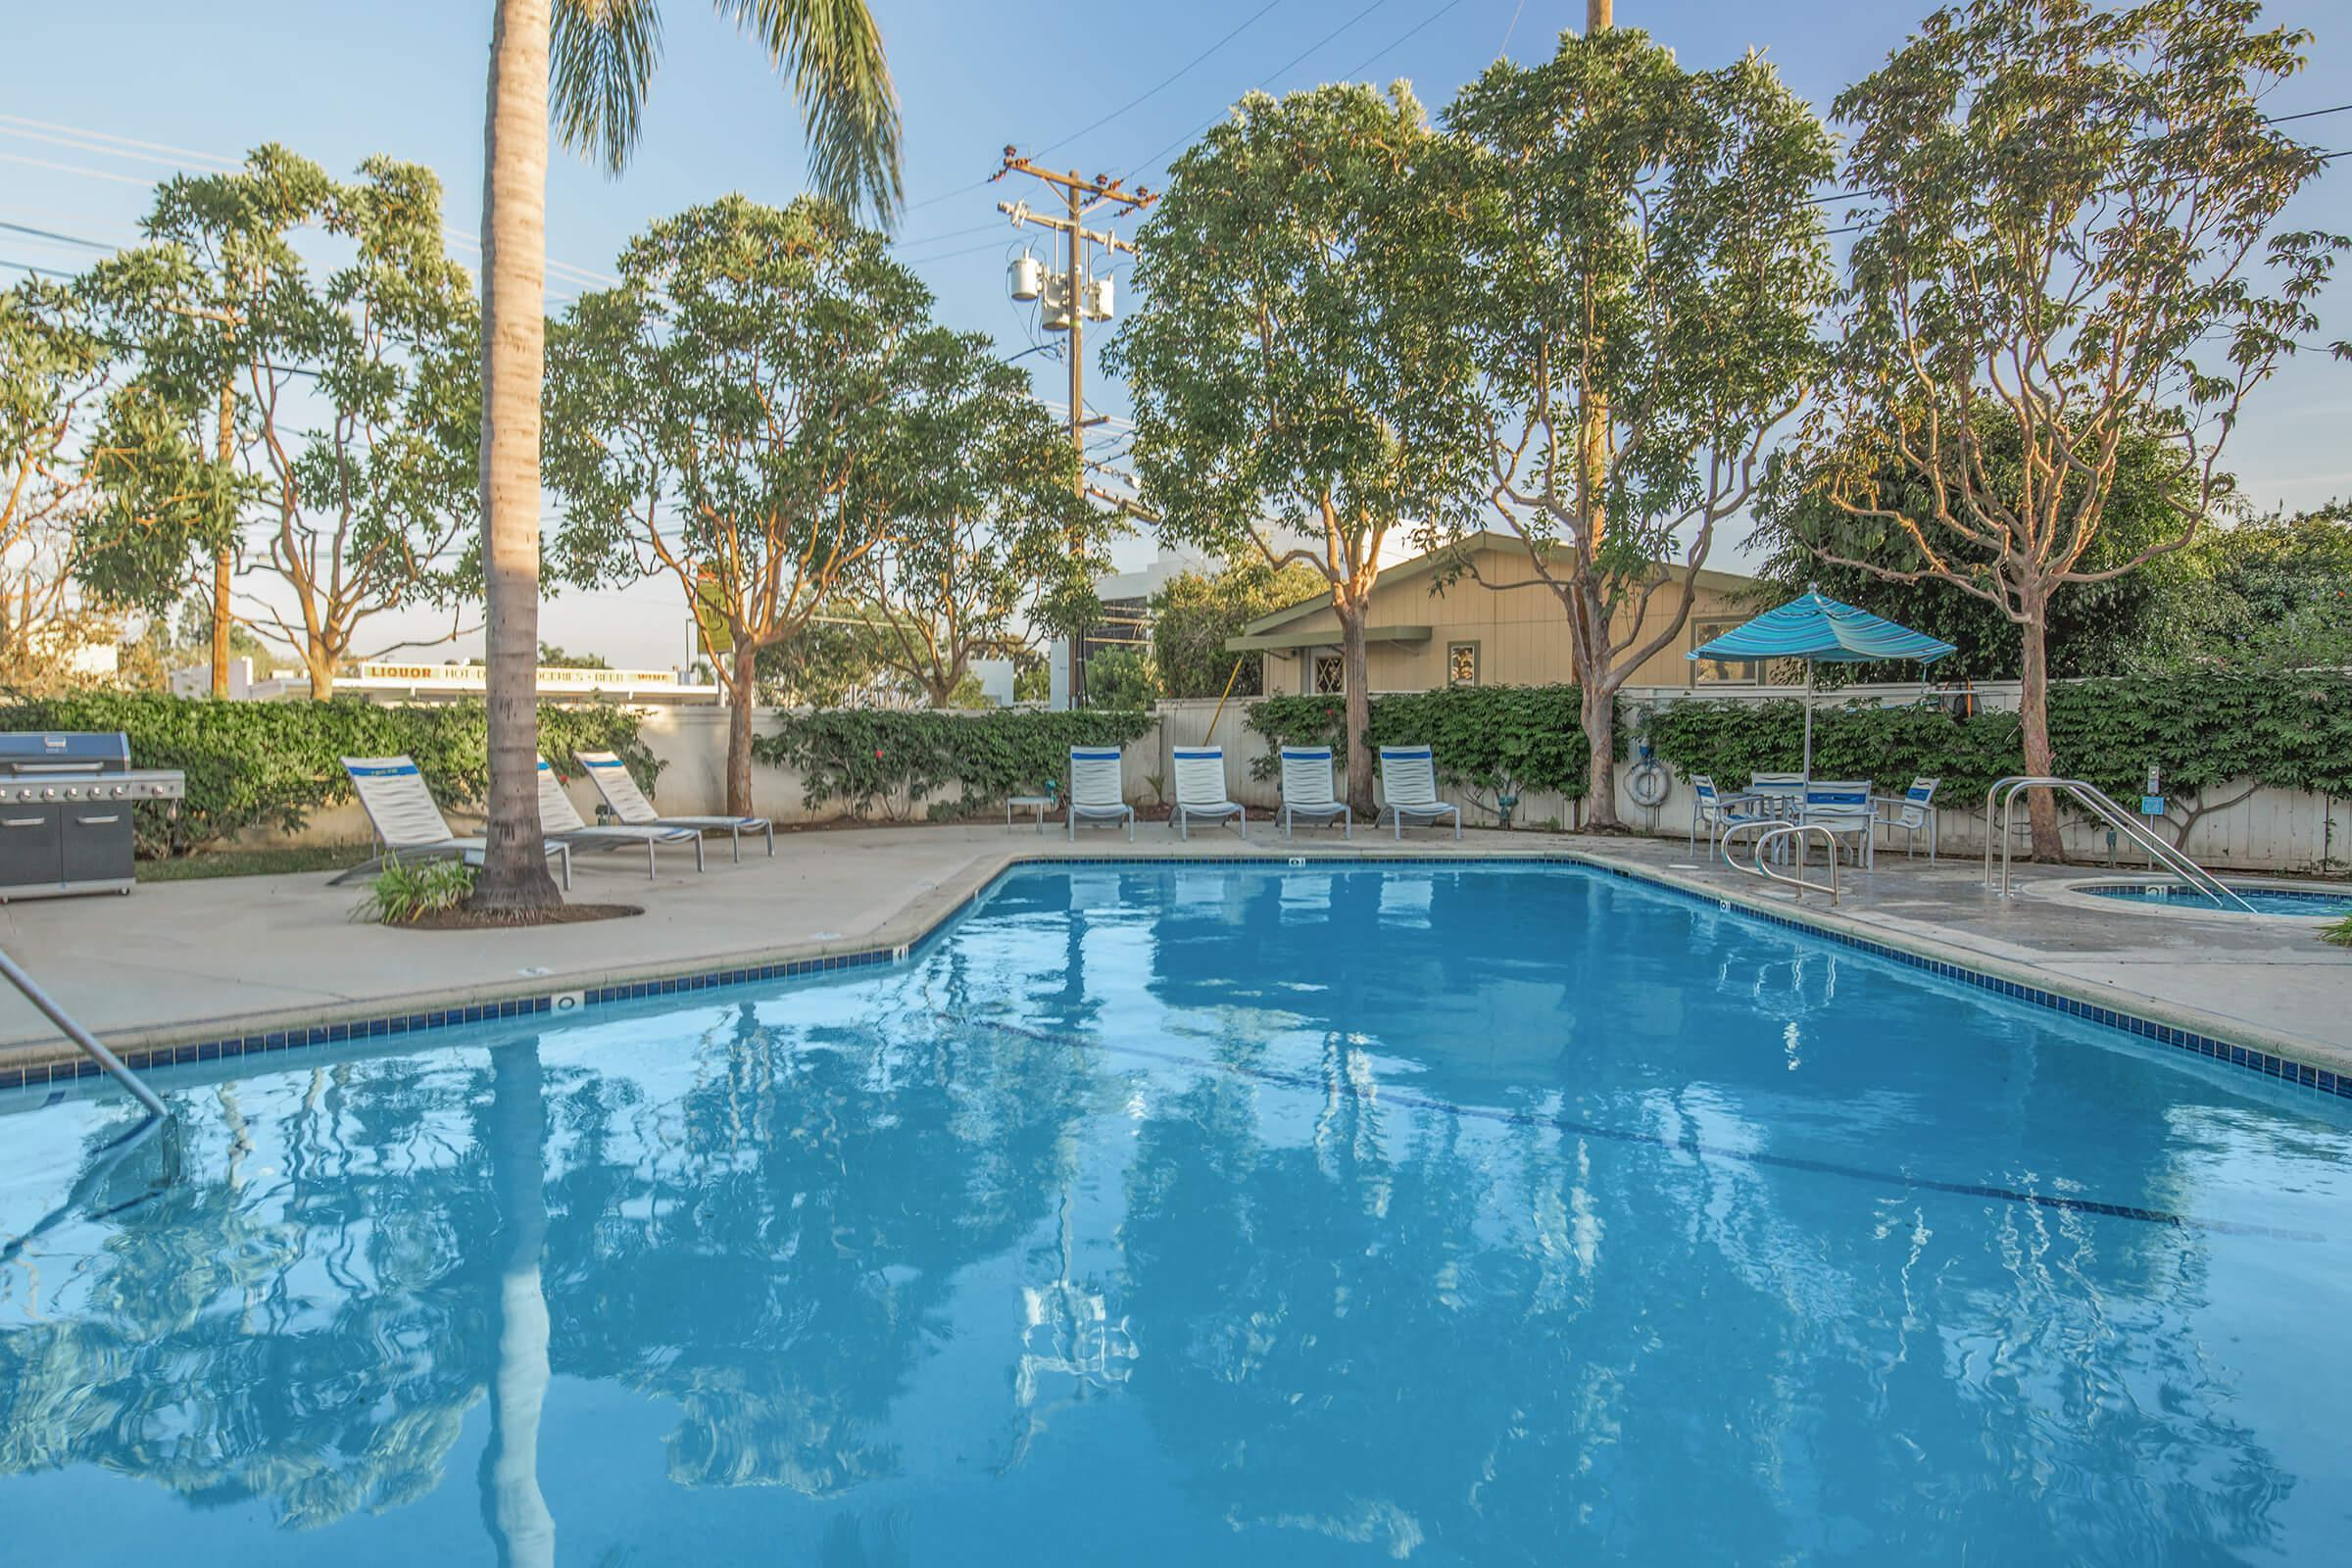 Sandpointe Cove Apartment Homes community pool